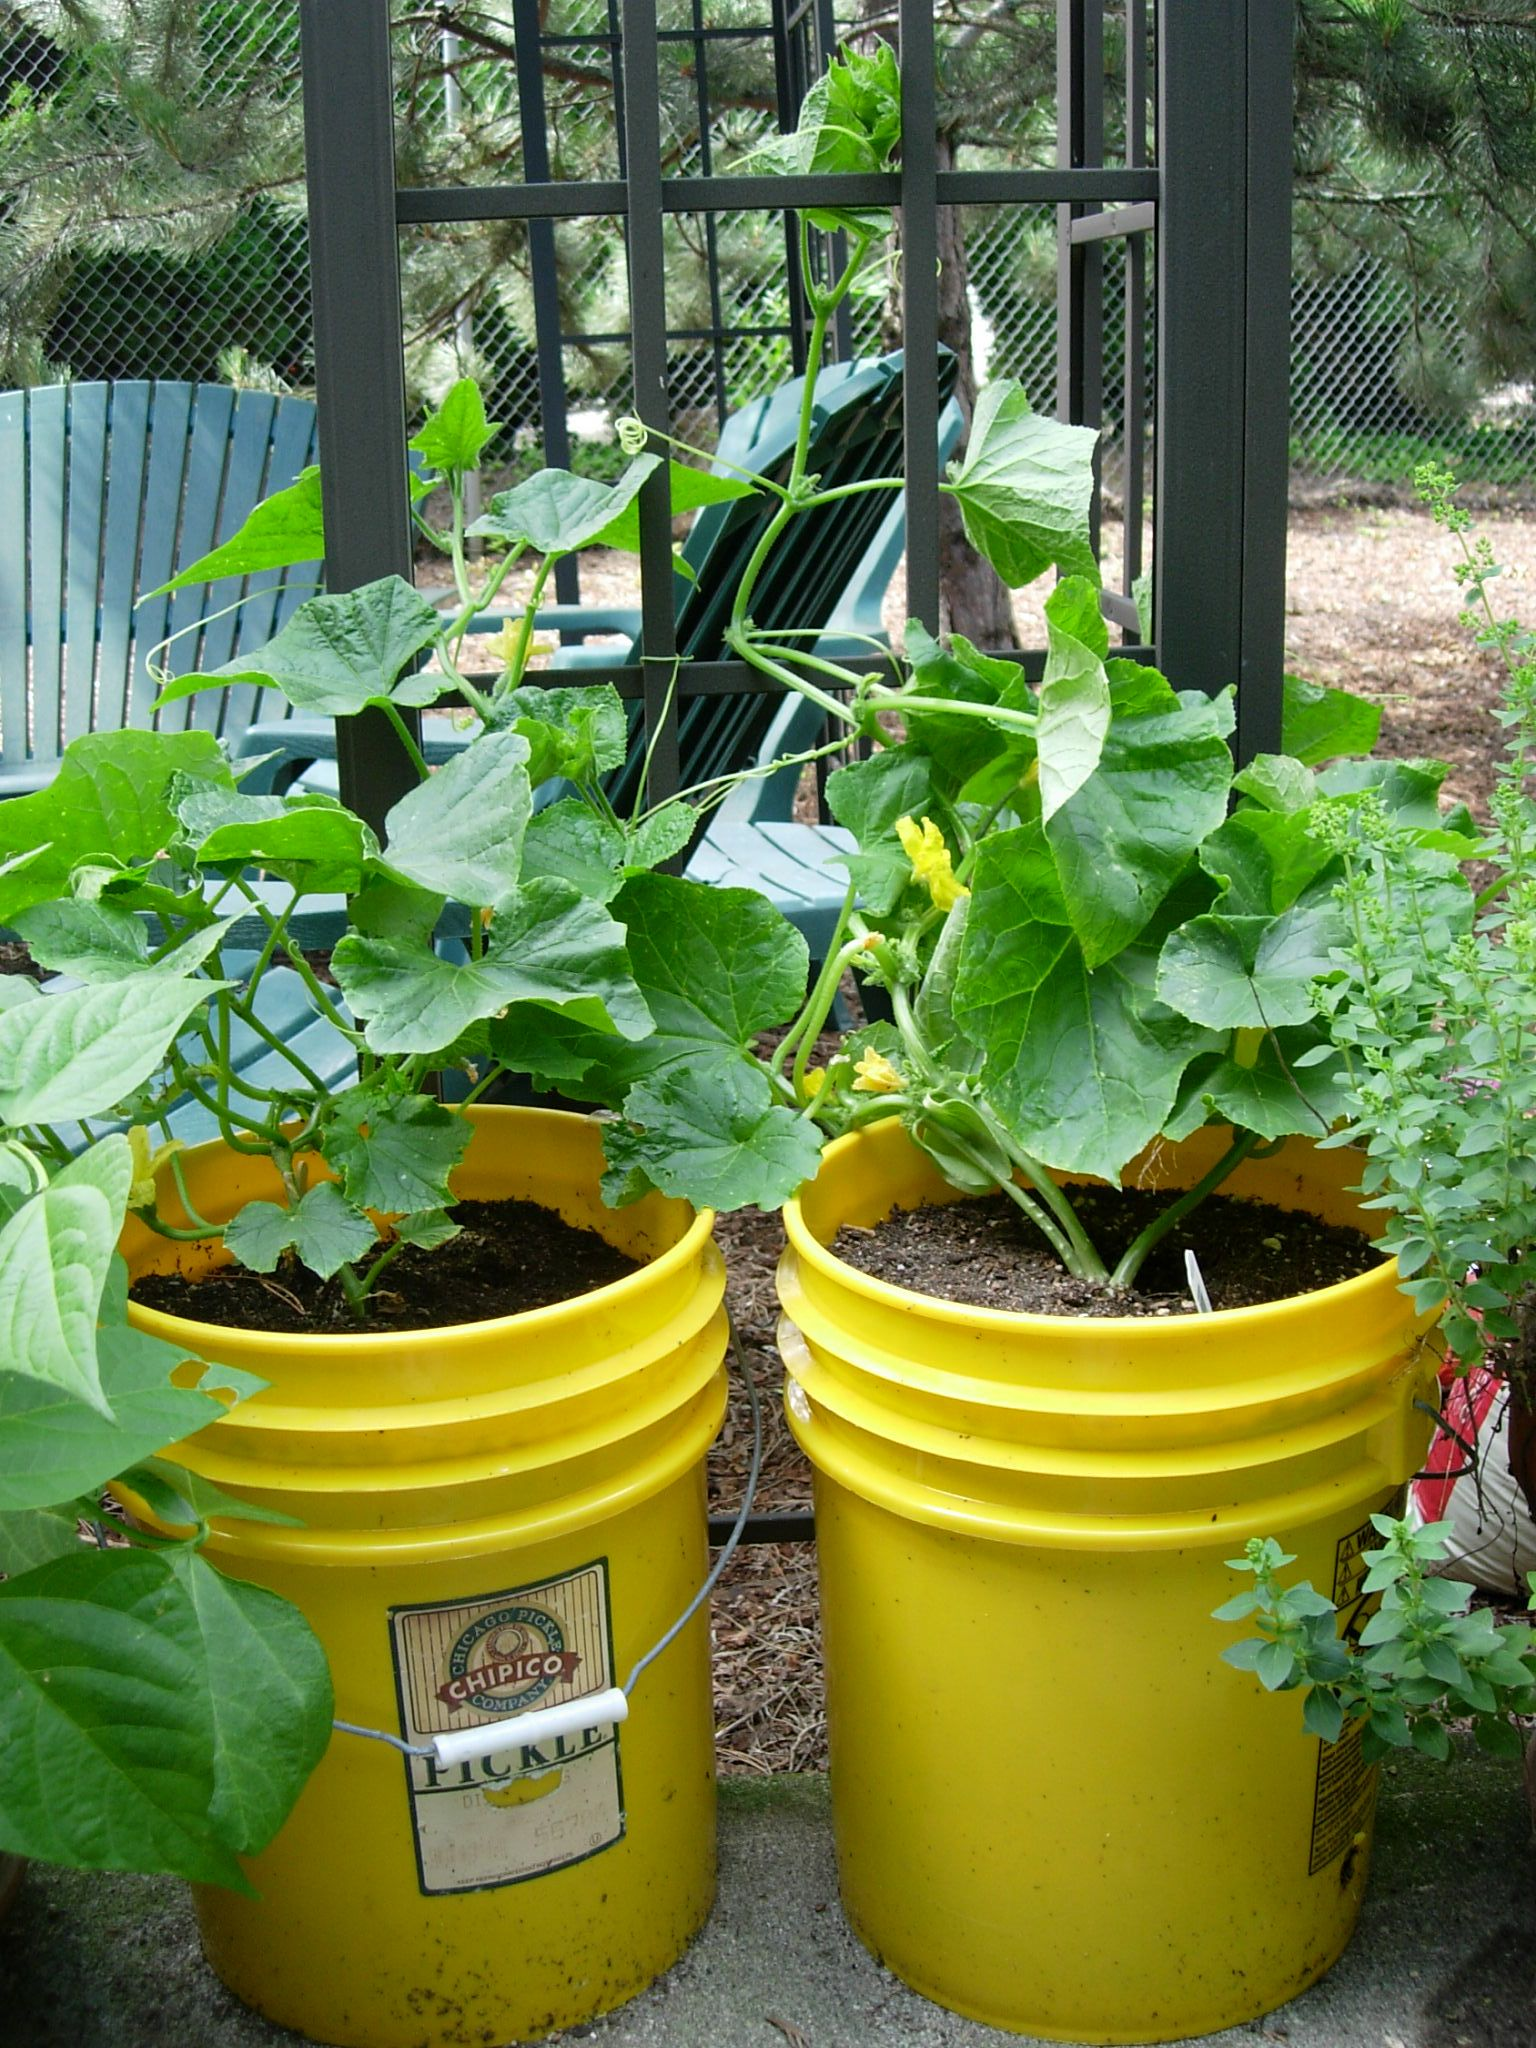 Spring Gardening Tip 2 Gardening with Containers